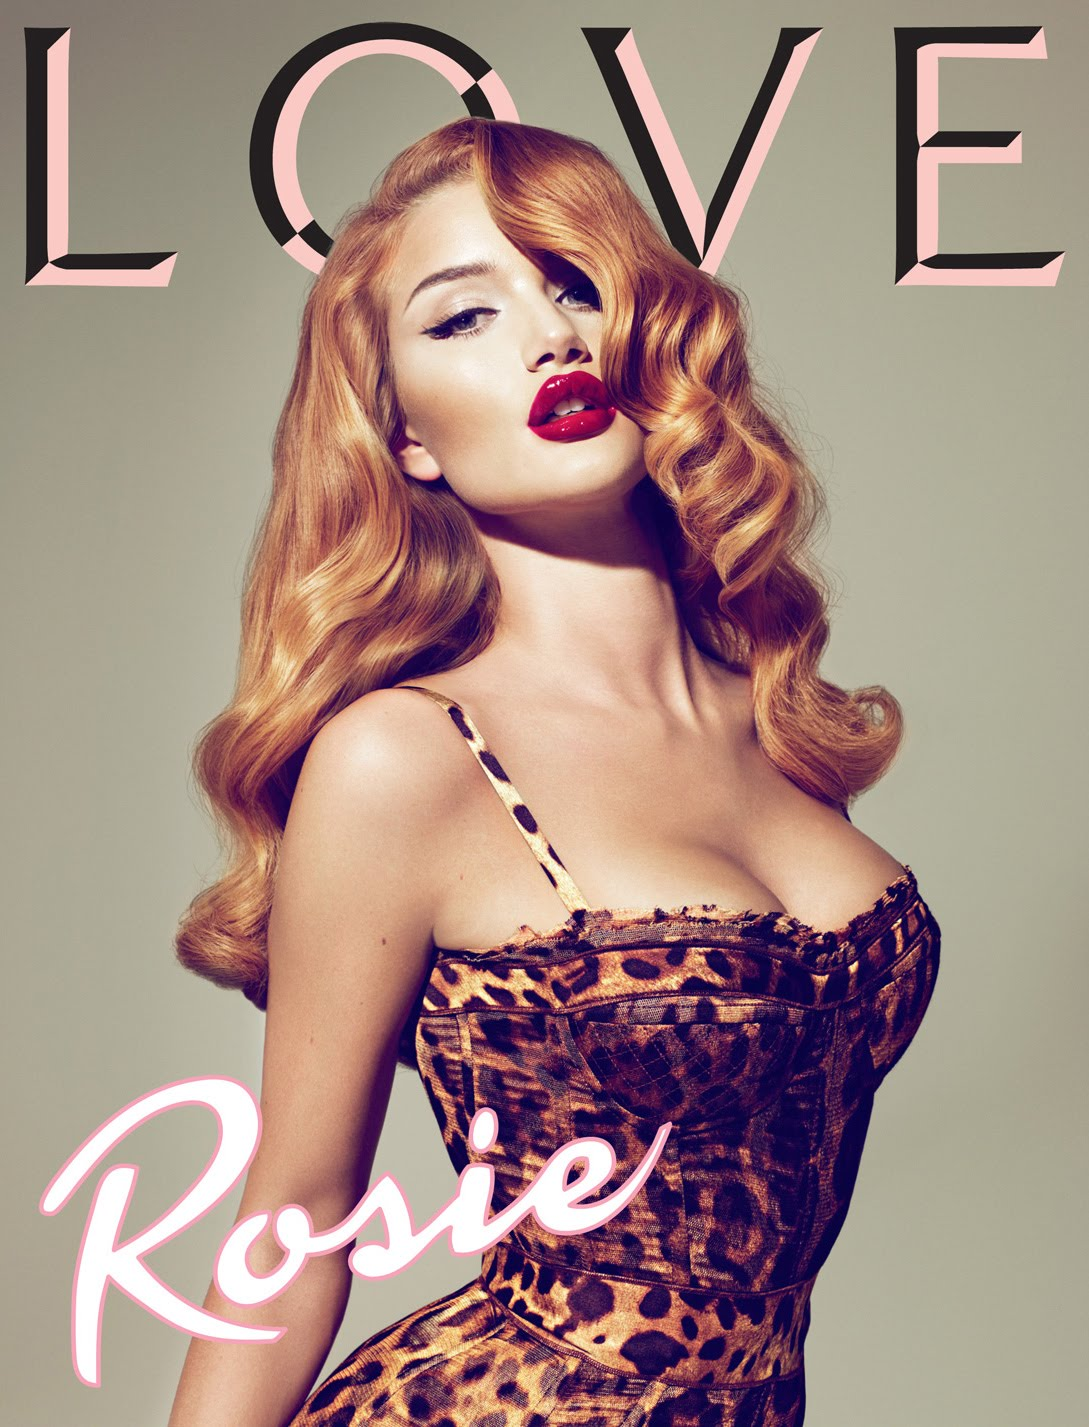 http://3.bp.blogspot.com/__0t4IBGvSCE/THHQ6pLpMyI/AAAAAAAAAdg/w6LRCSxUM3I/s1600/moda+september+issue+love+magazine+cover+rosie+huntington-whiteley+1.jpg